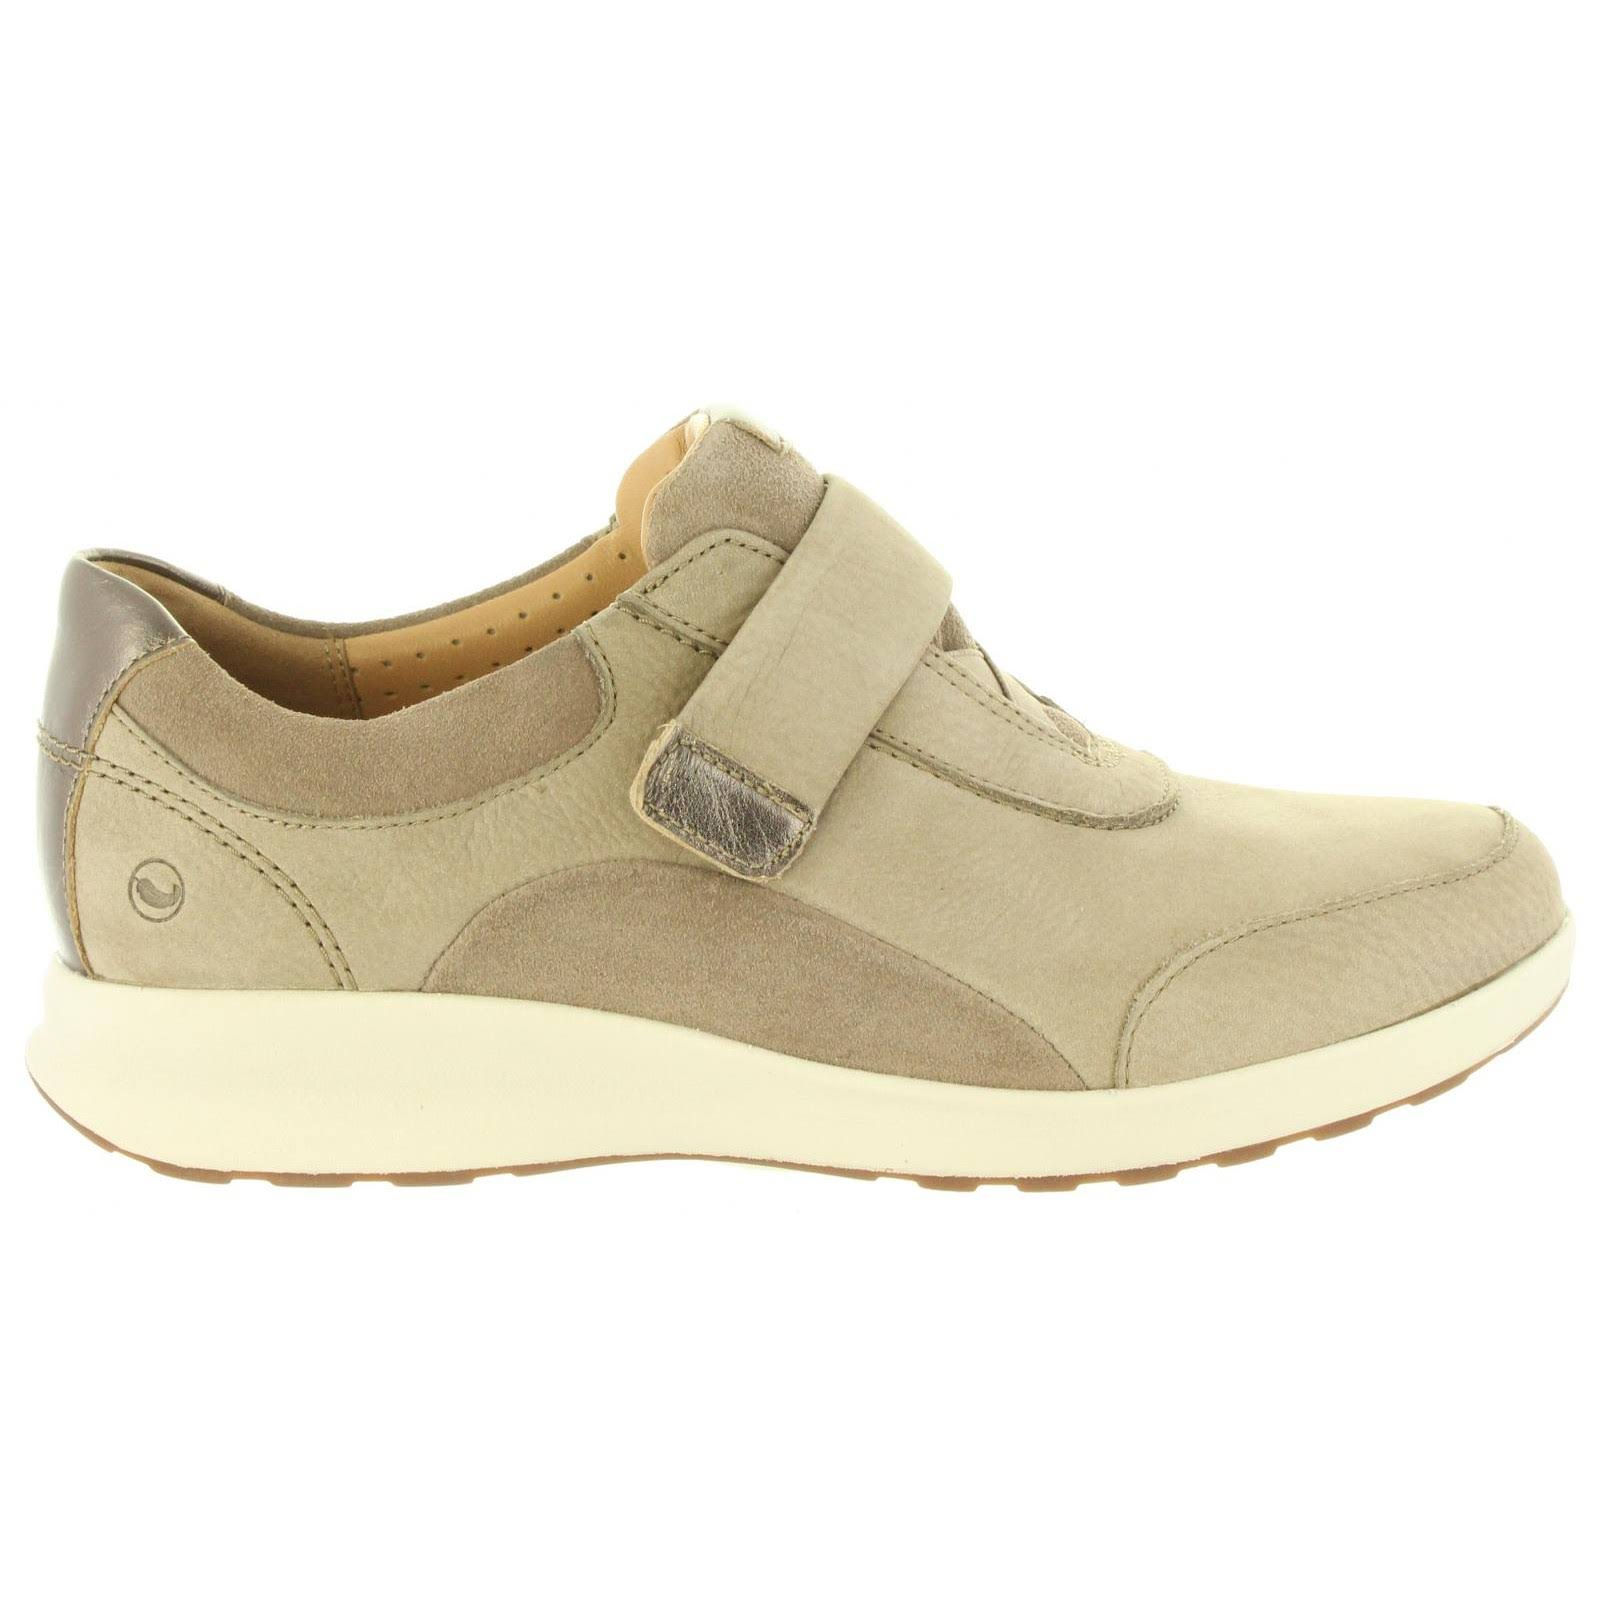 Pebble Sneakers Clarks Adorn top Damesschoenen Low Lo Un mnN8w0